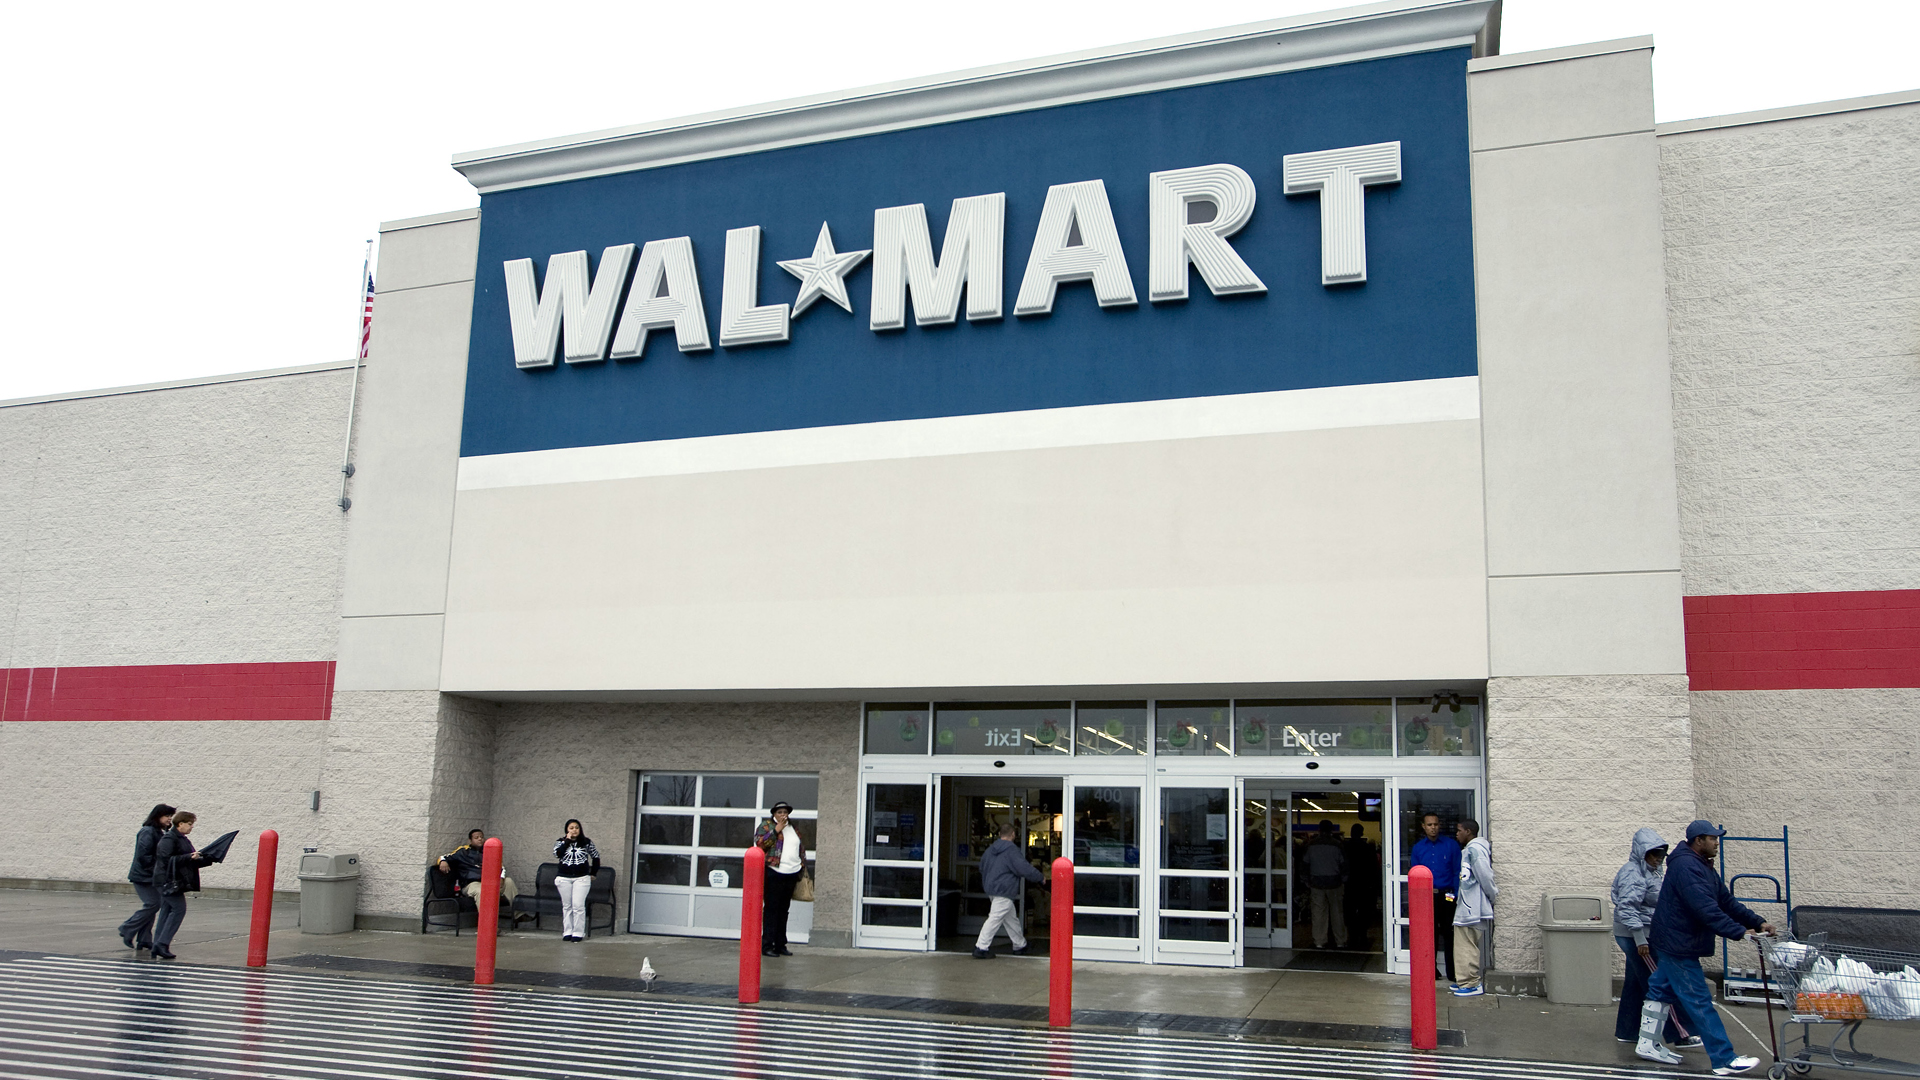 A Walmart in New Jersey is seen in this file photo from 2007. (Credit: Jeff Zelevansky/Getty Images